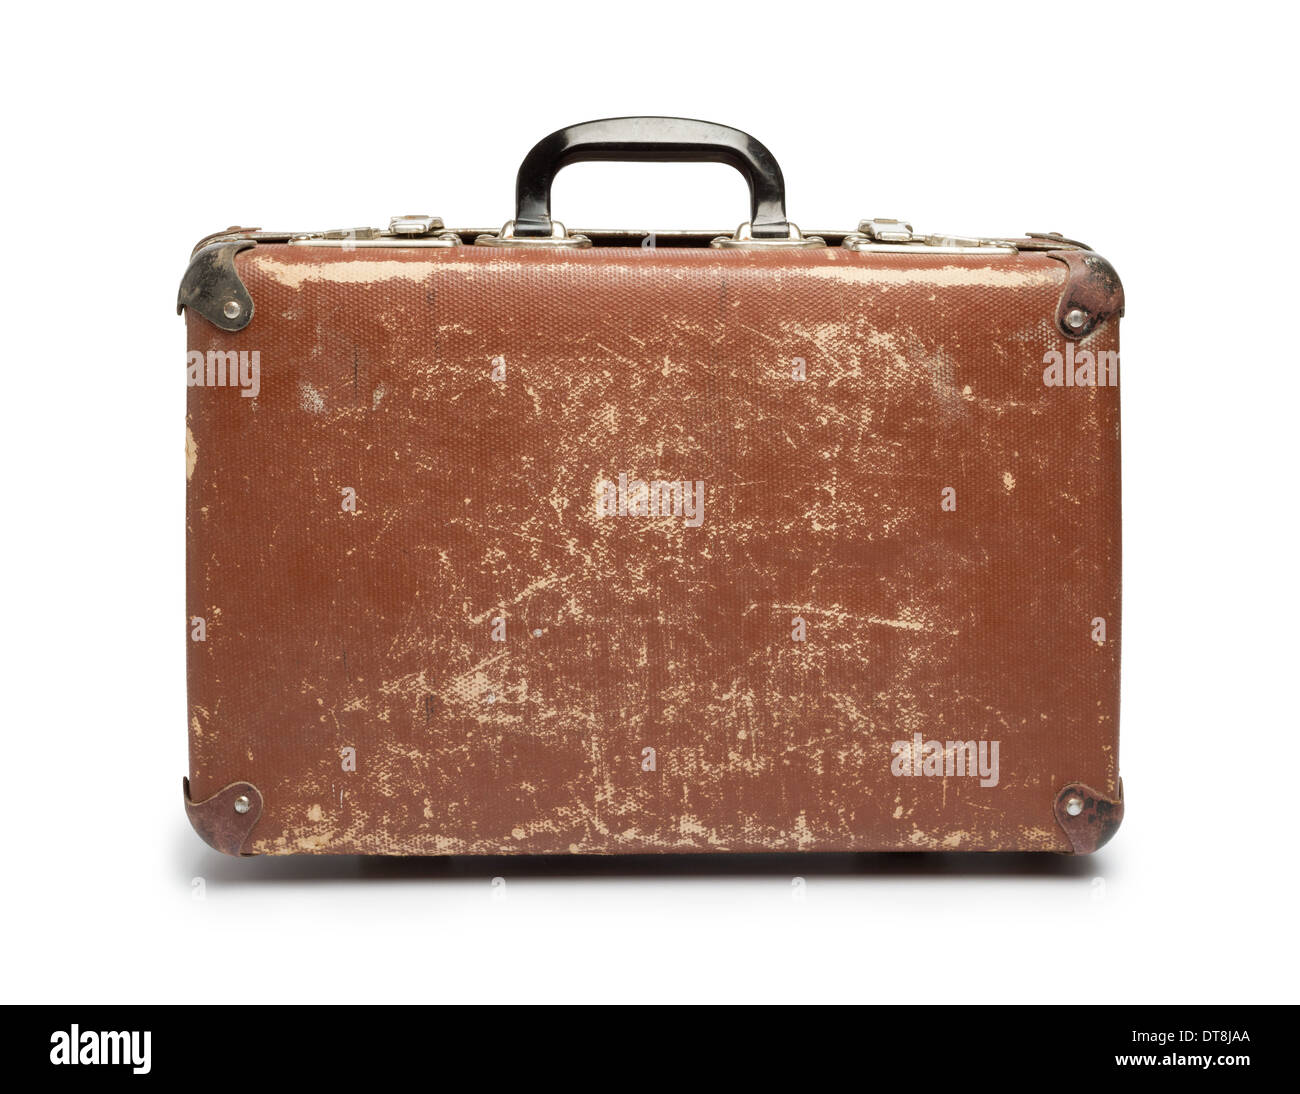 Vintage brown suitcase on white background - Stock Image